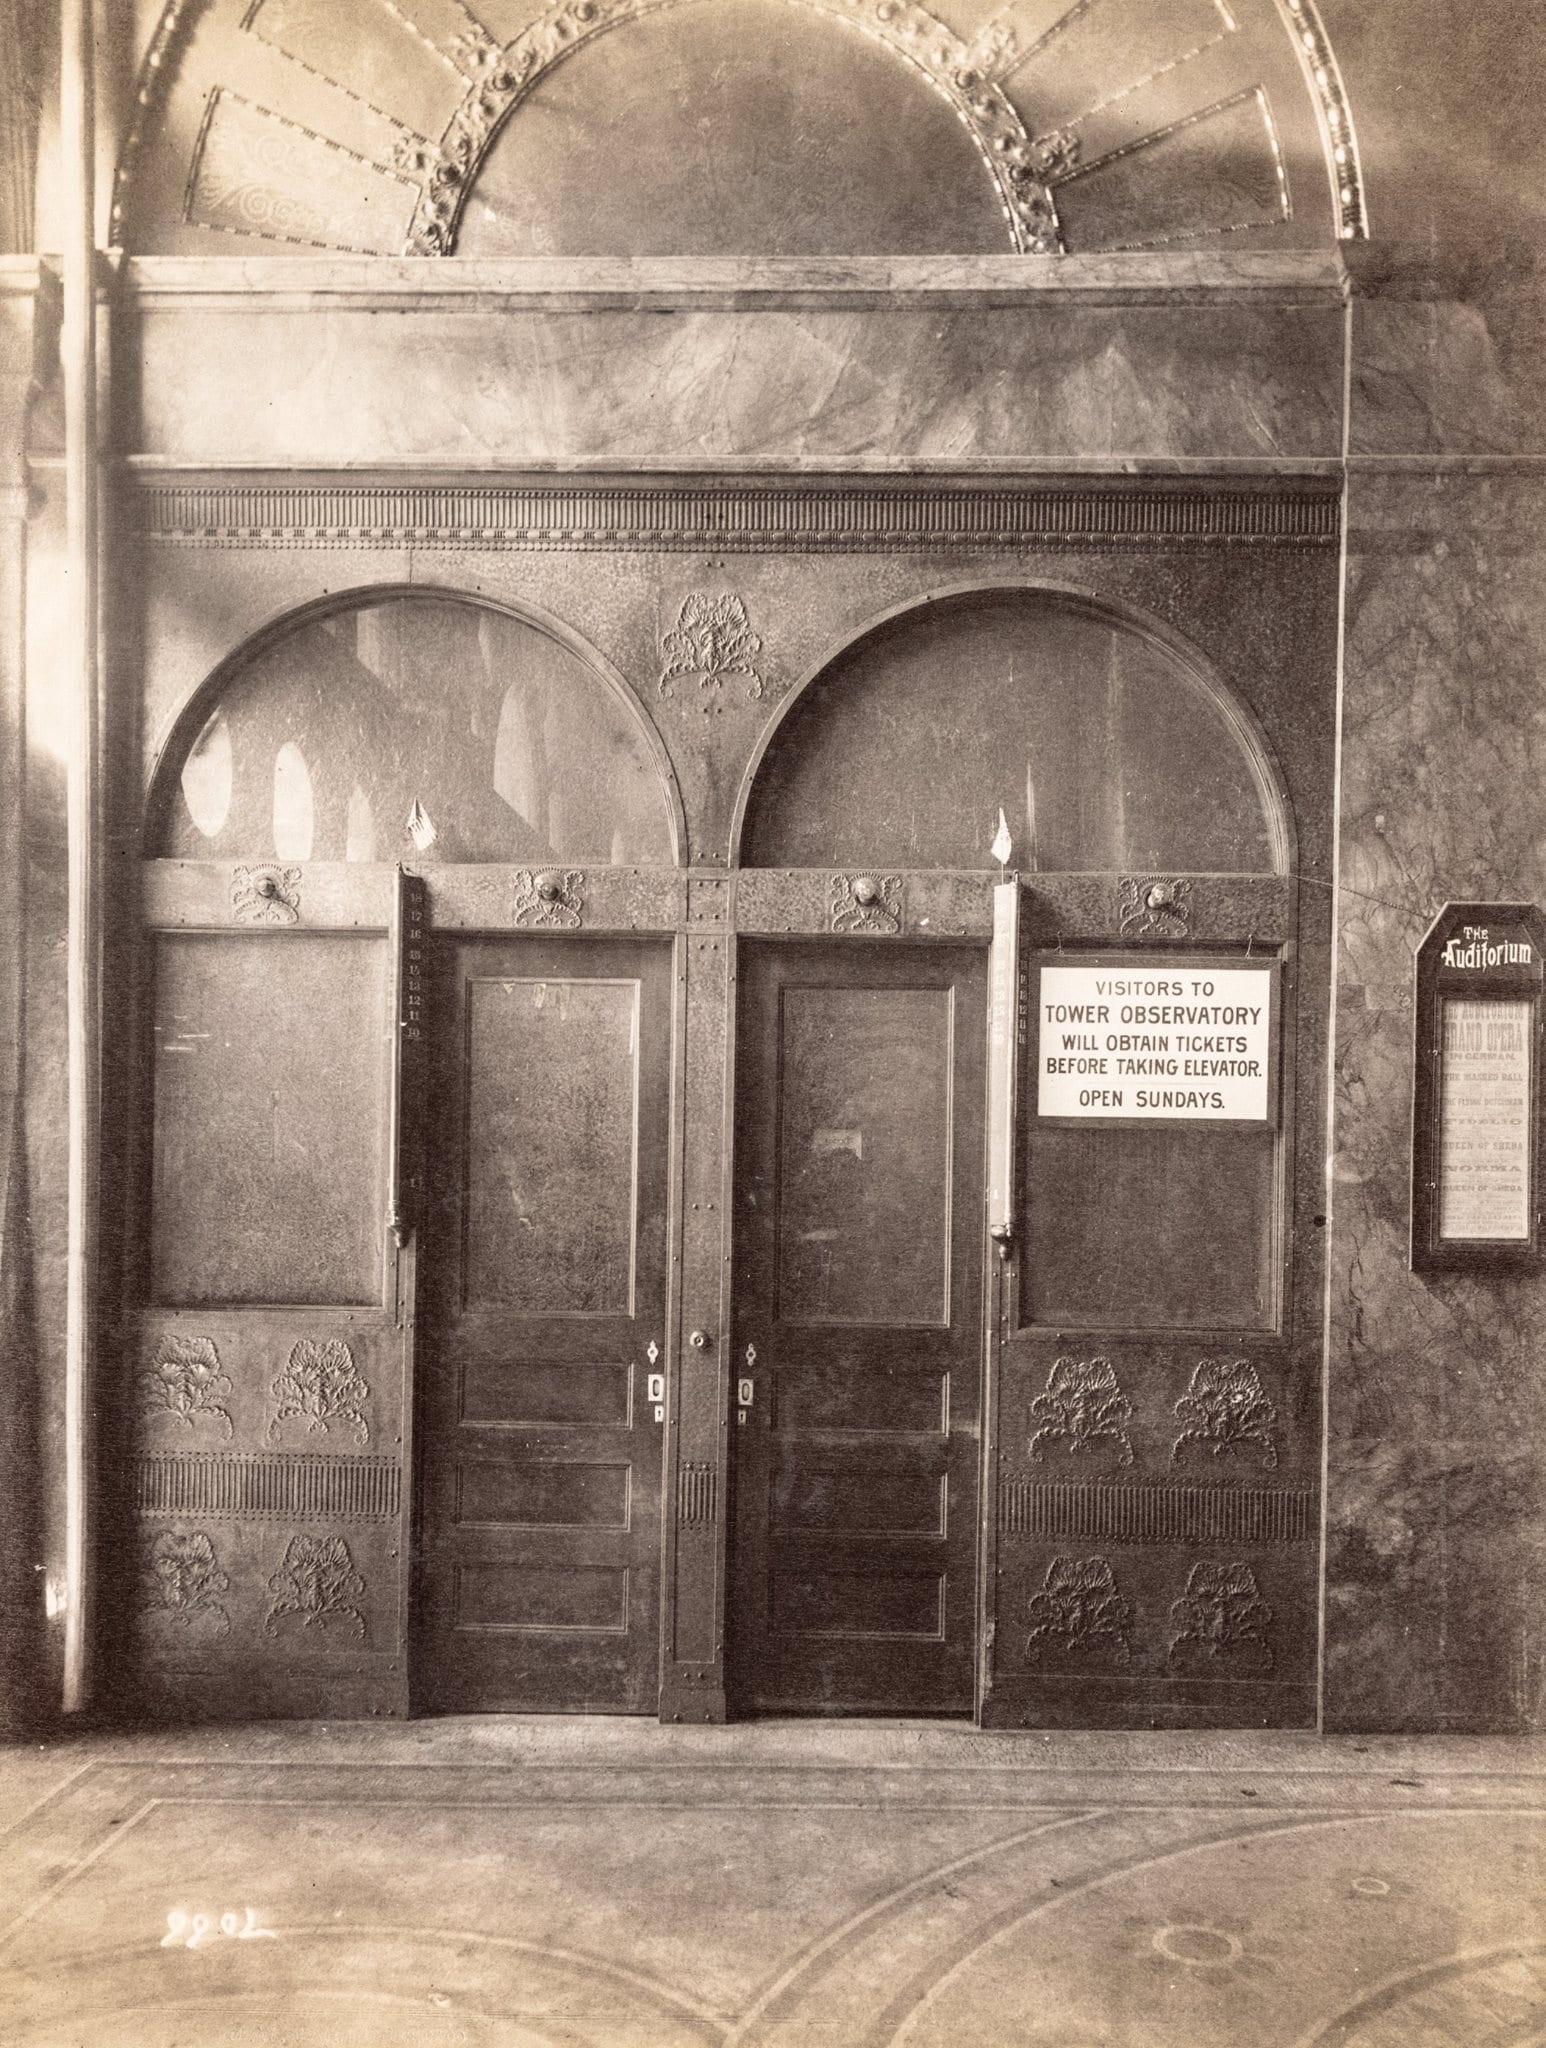 A Large Set Of Albumen Prints Were Made By Photographer James W. Taylor  Shortly After Adler And Sullivanu0027s Auditorium Building (1889) Was  Completed, ...